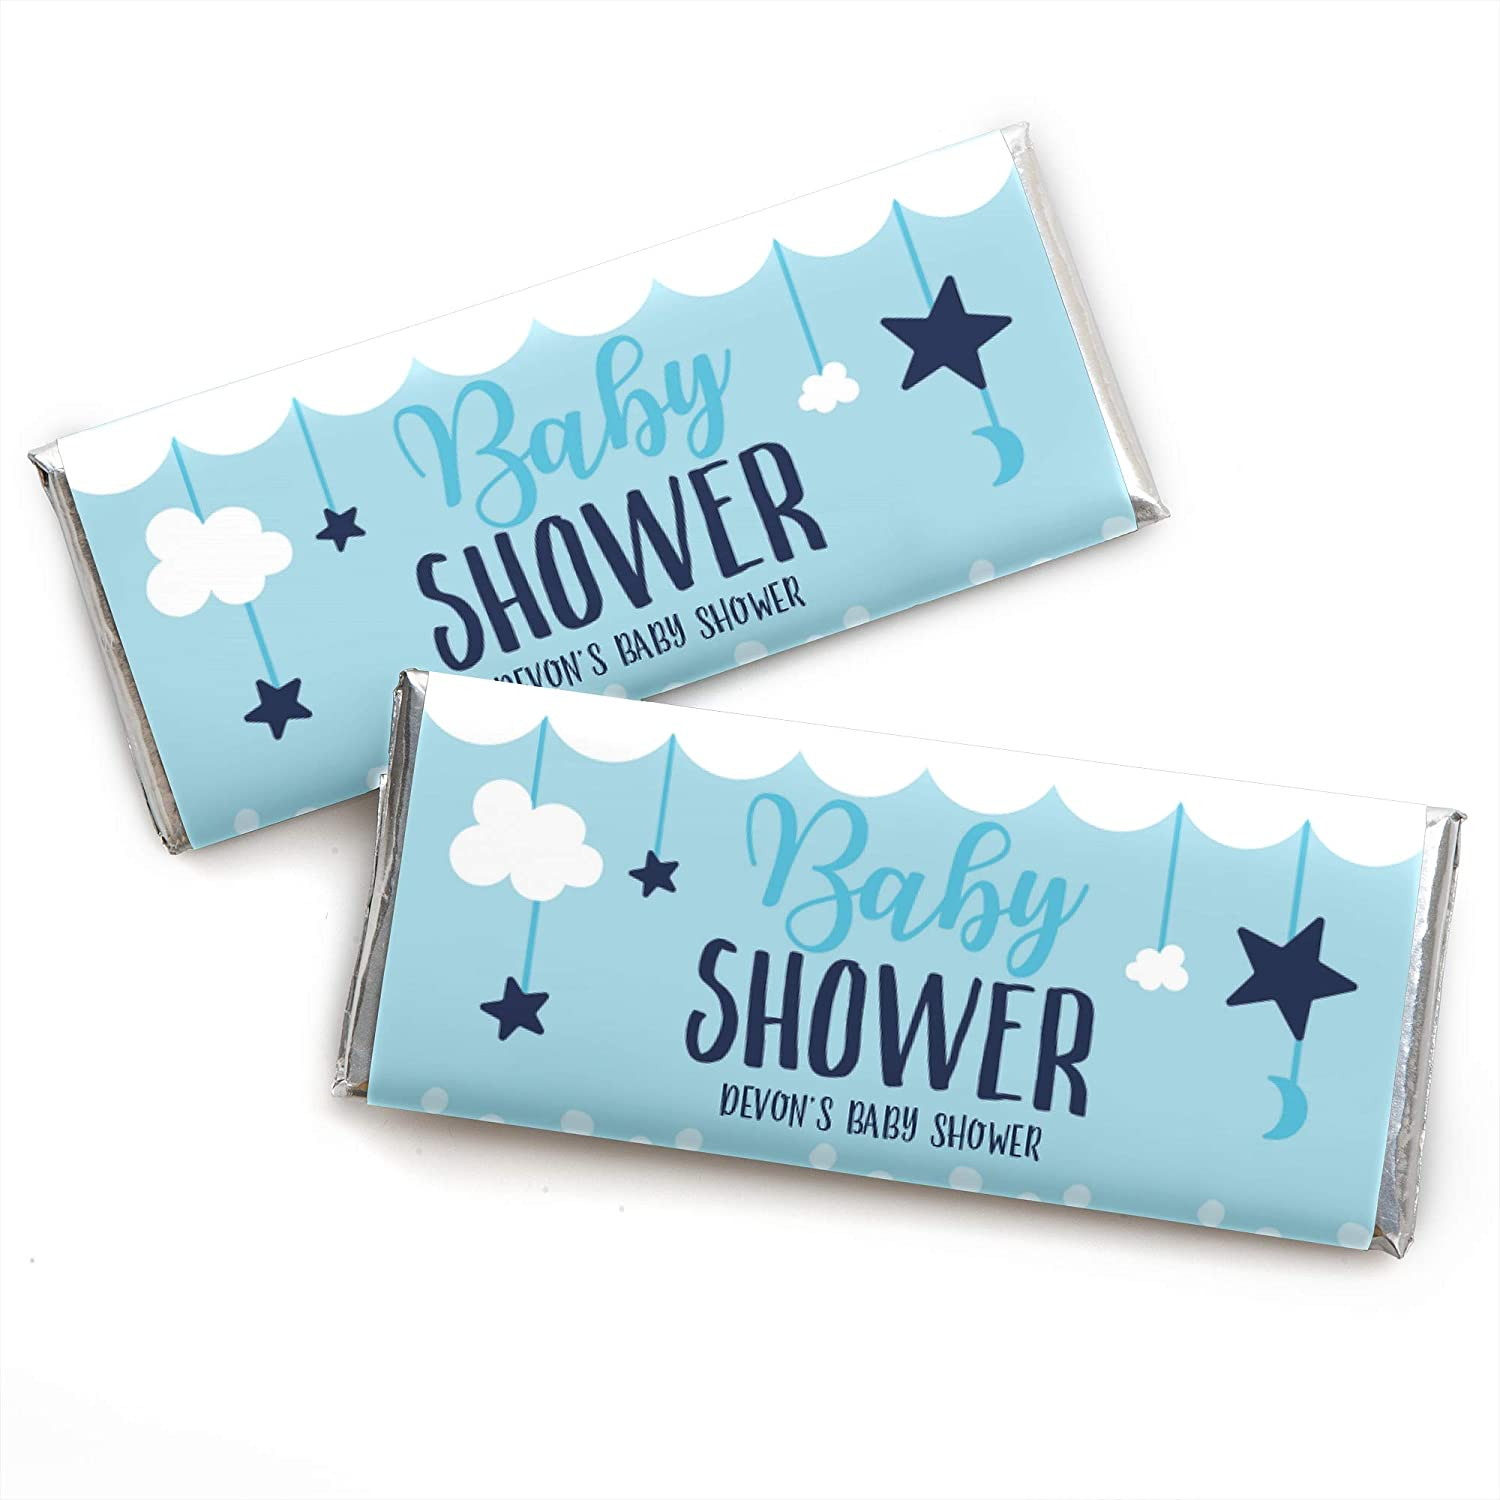 12 x Personalised Wrappers Chocolate Bars Baby Shower Favours Baby Blue